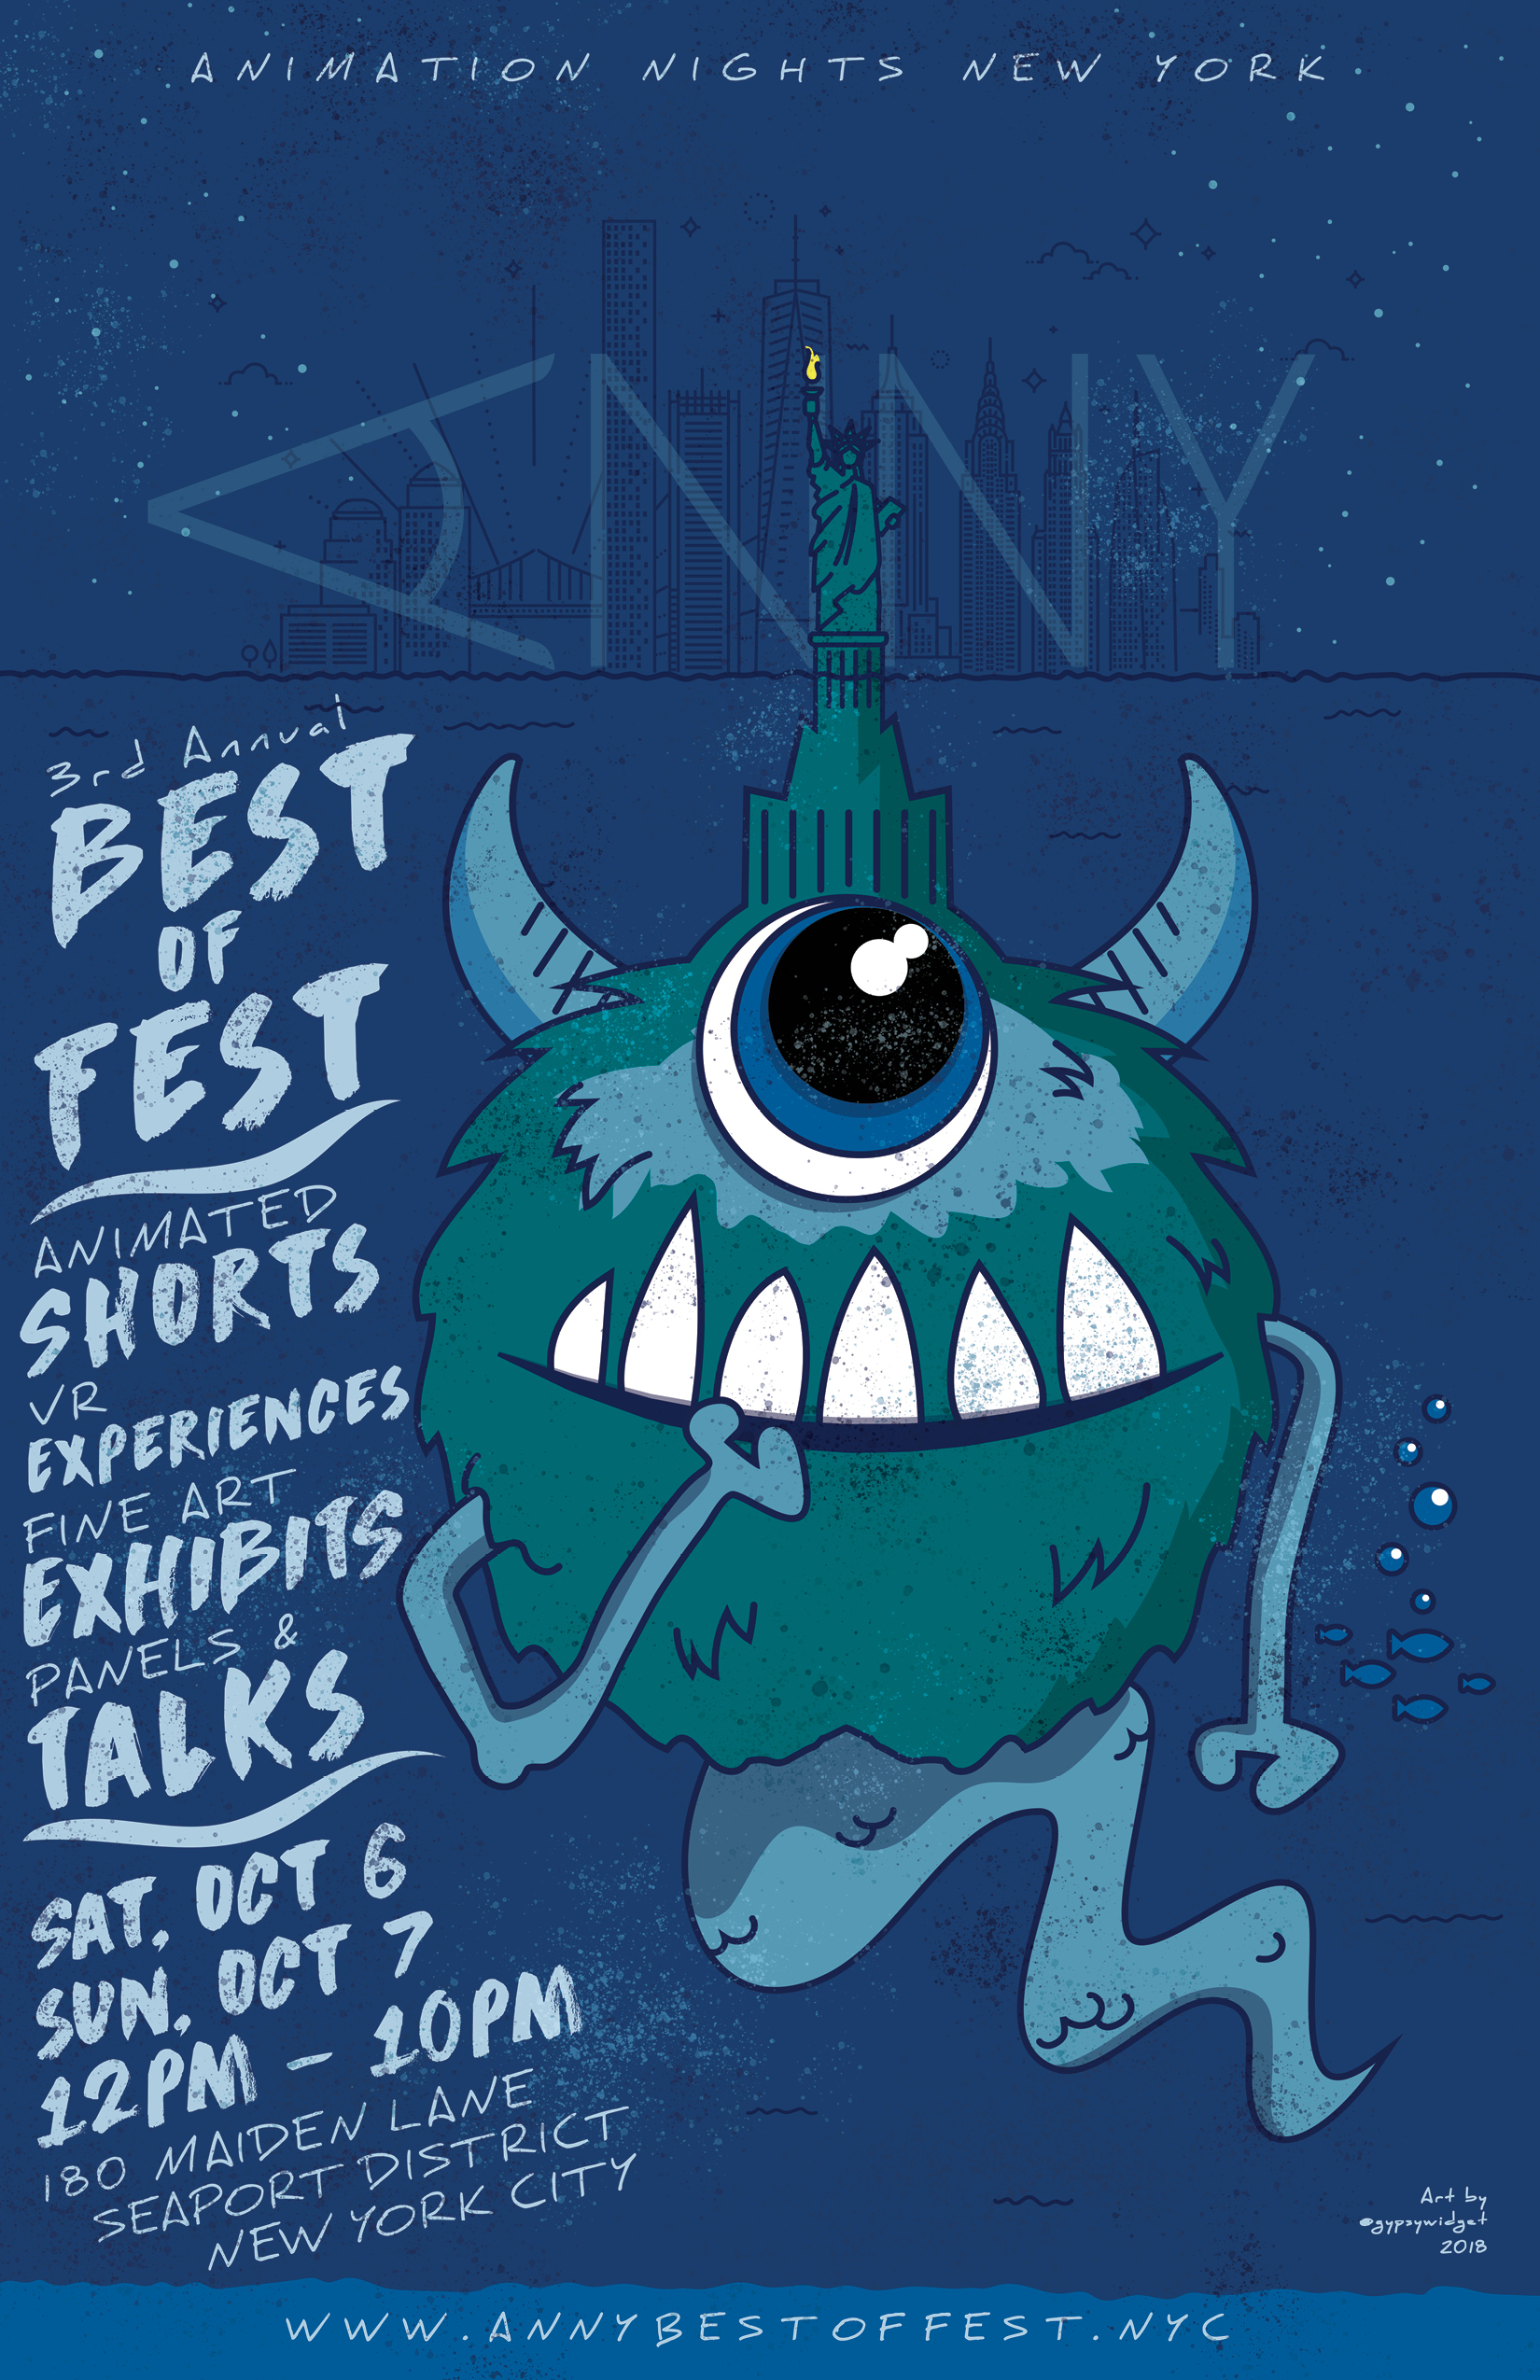 2018 ANNY Best of Fest